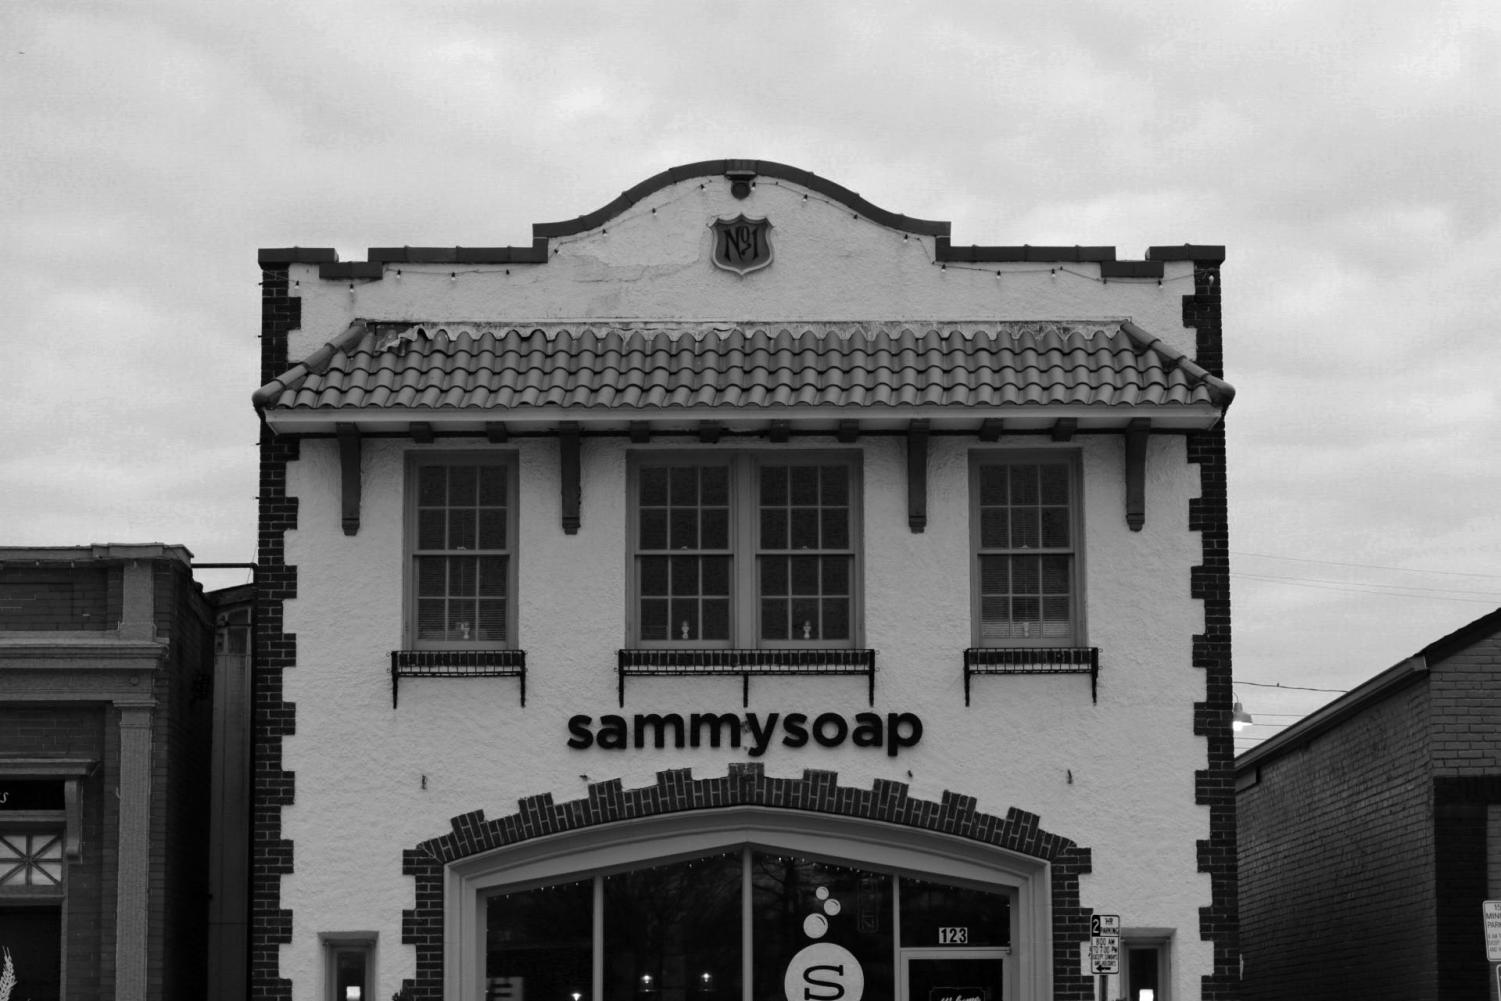 Sammy+Soap+is+a+soap+shop+in+the+heart+of+Downtown+Kirkwood.+